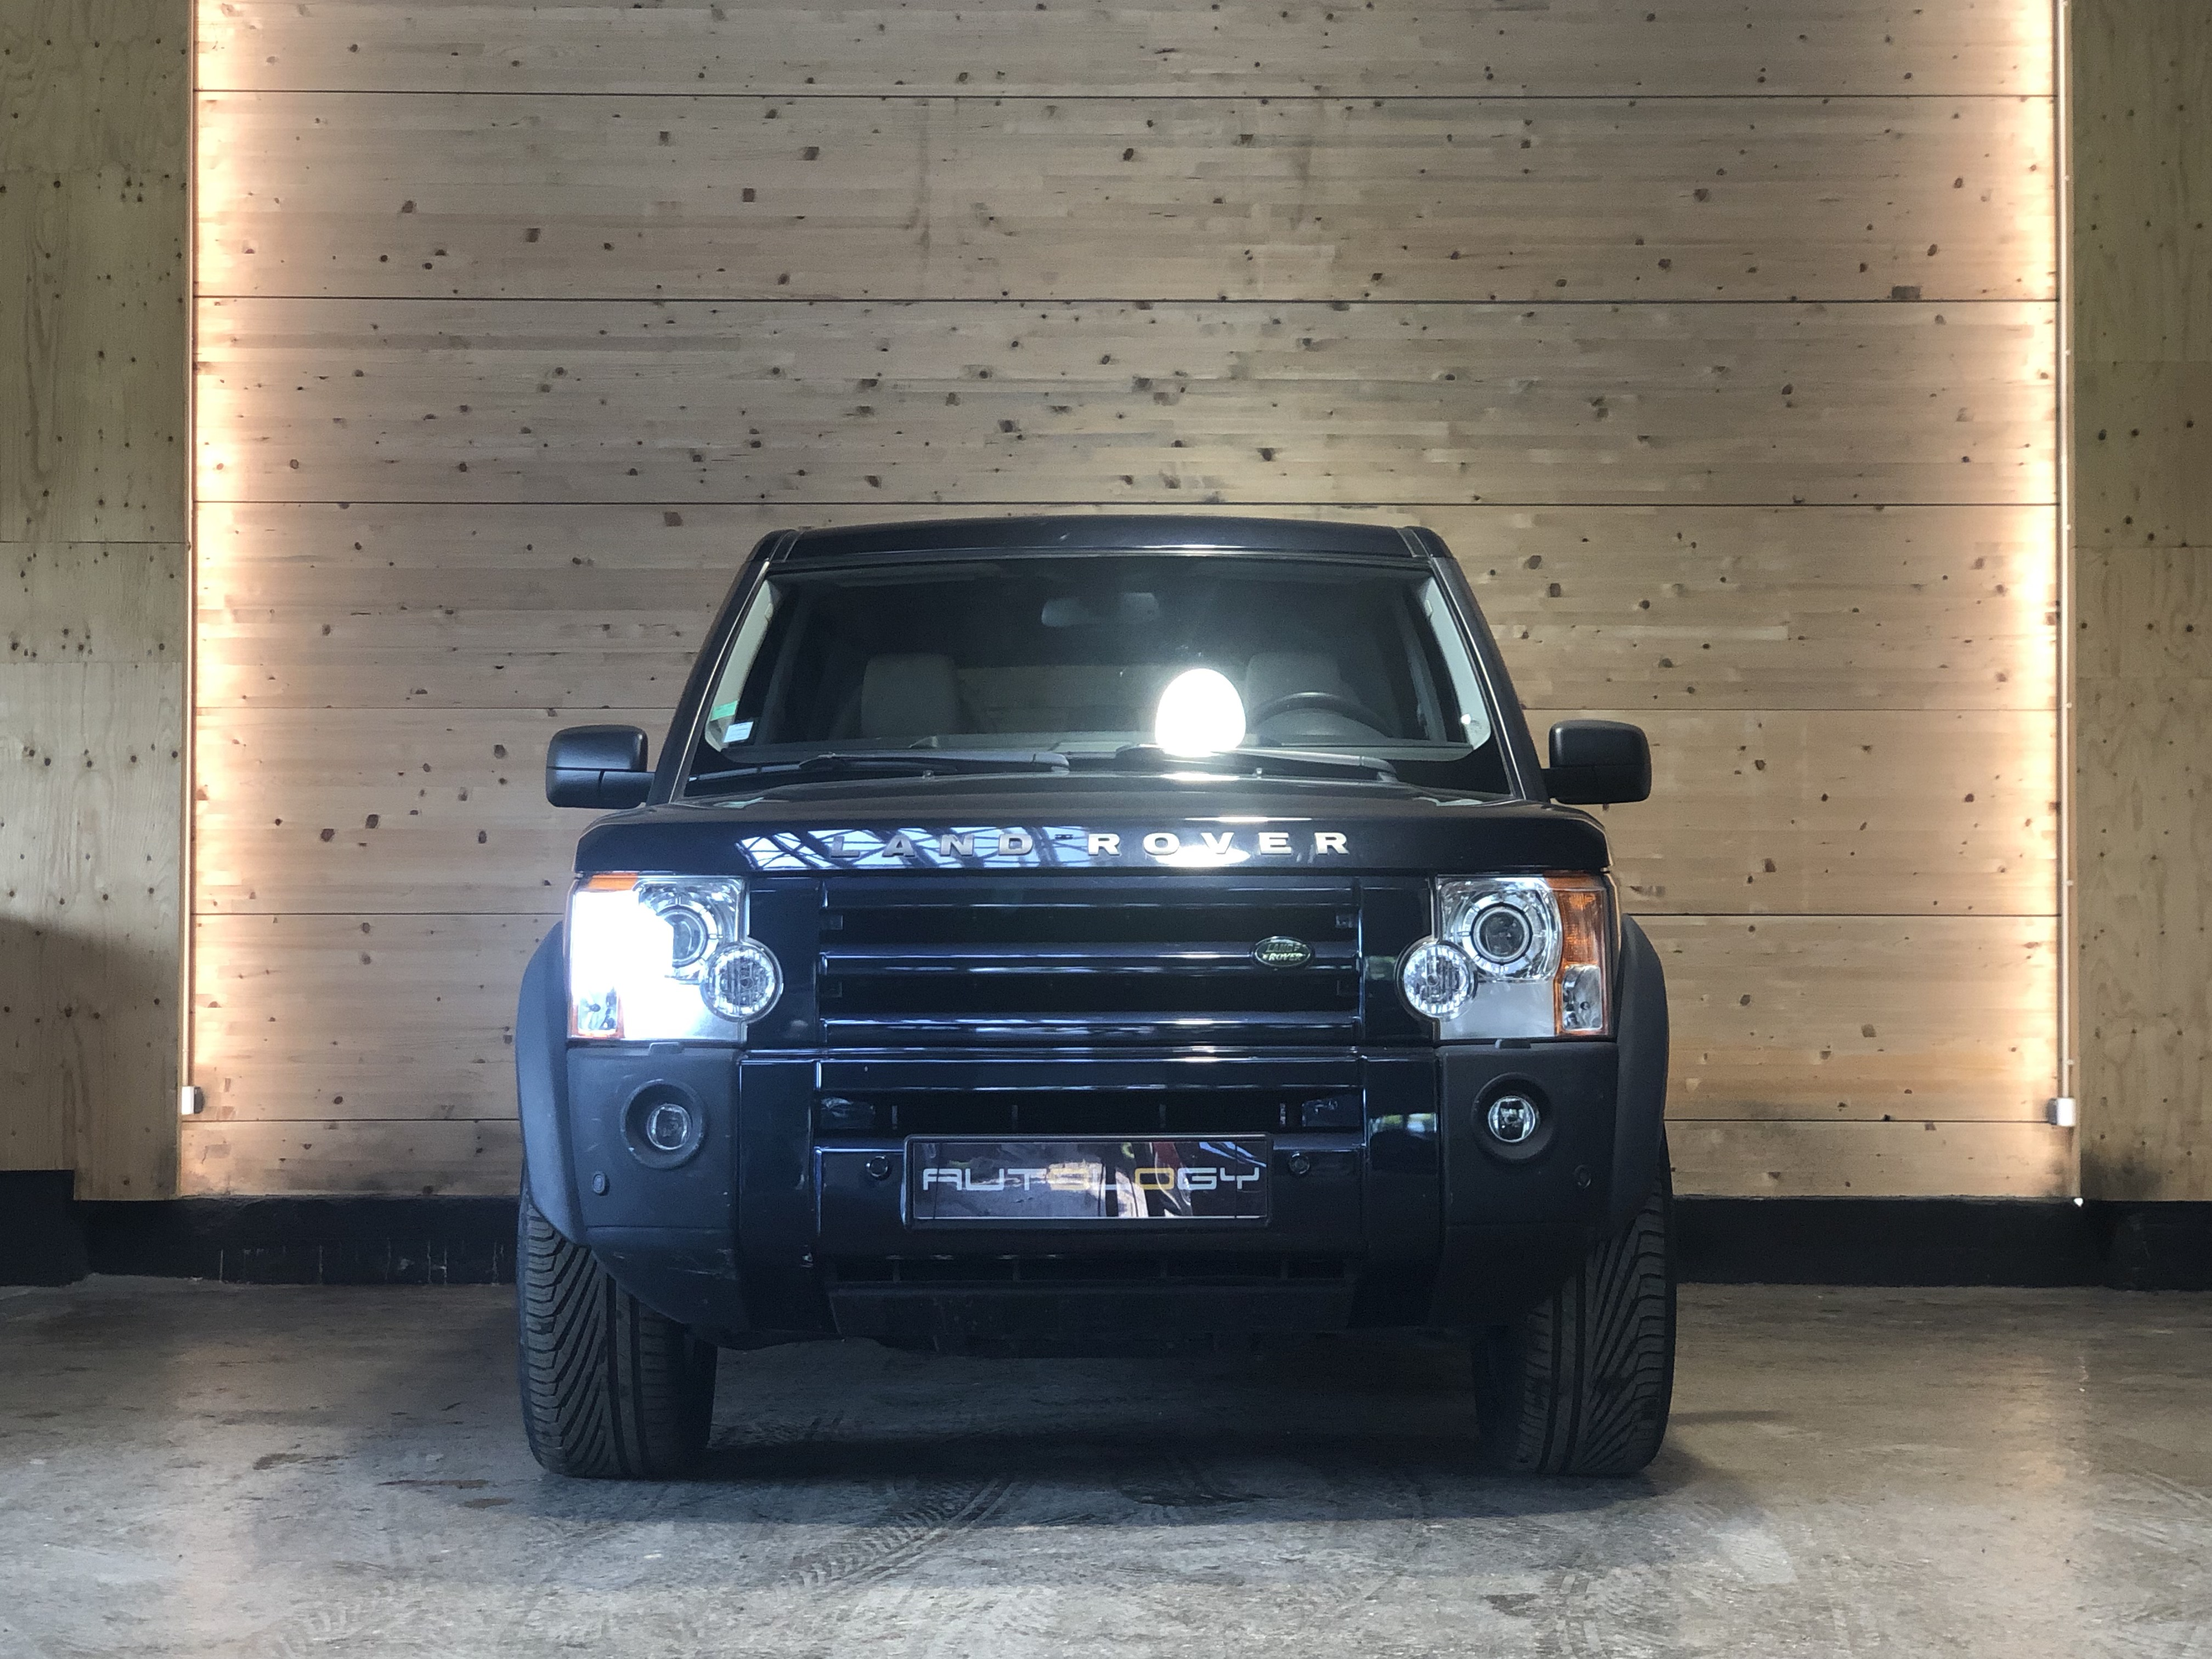 Land Rover Discovery V8 4.4 HSE 7 places